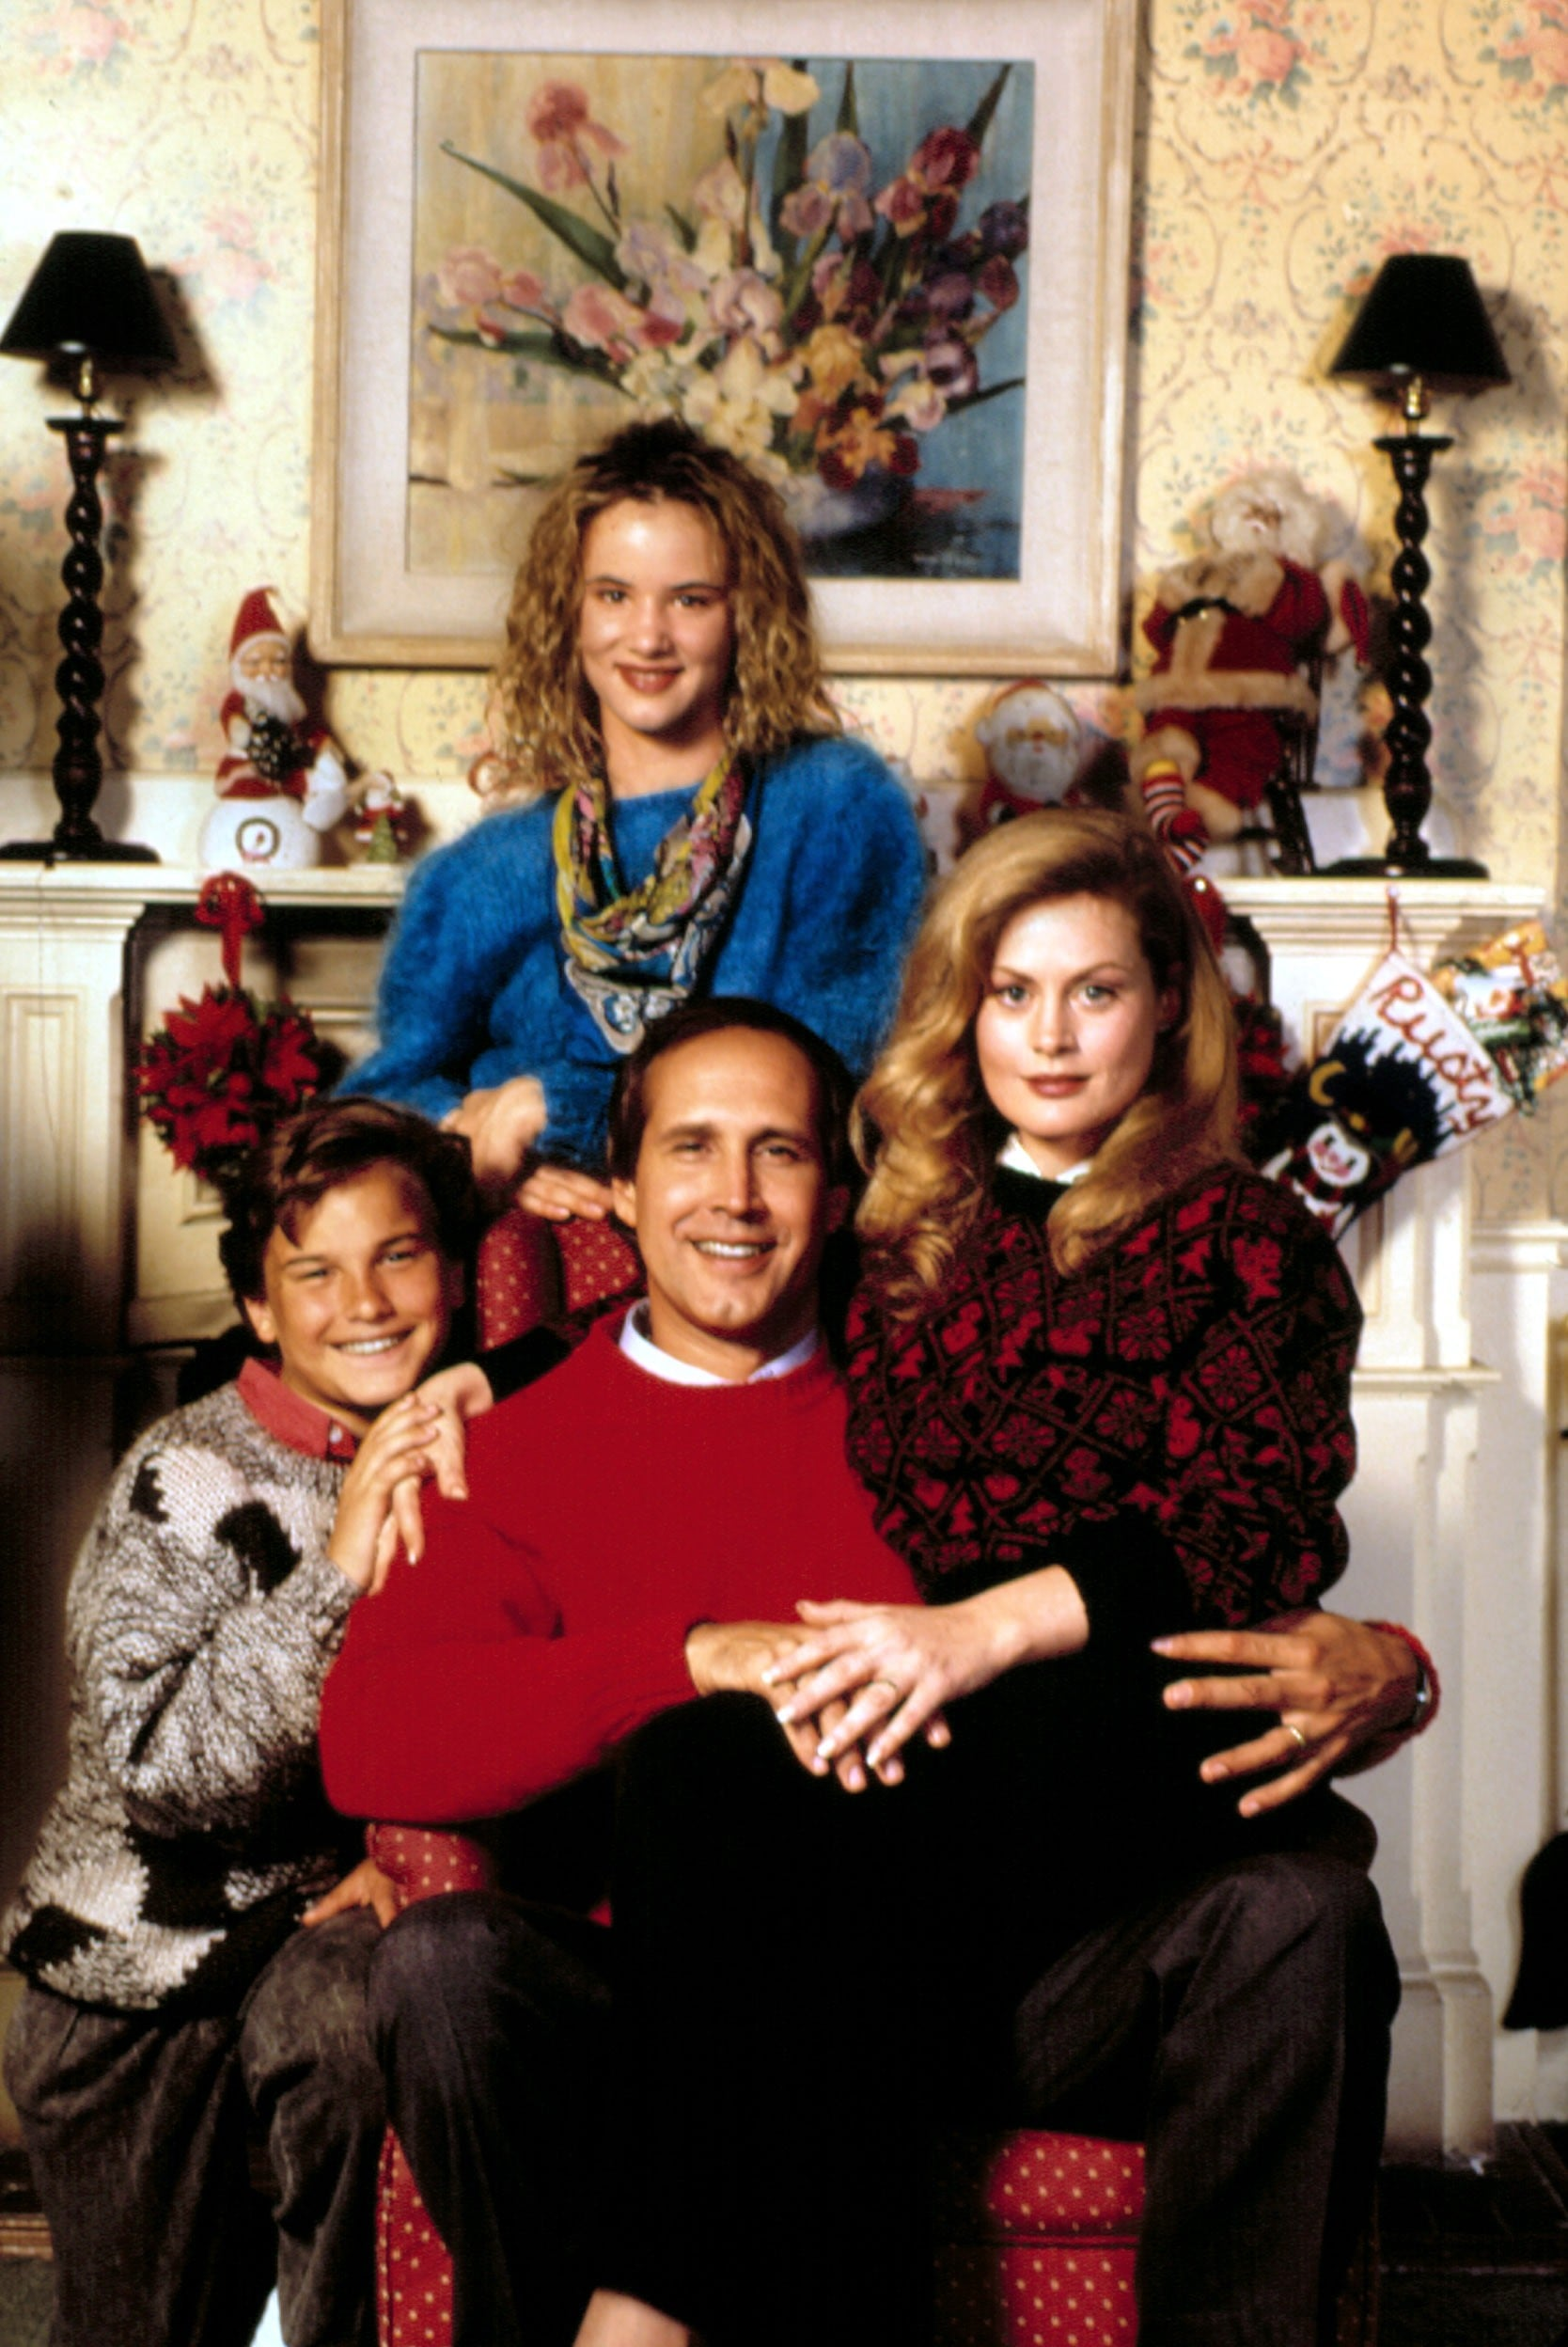 Audrey Christmas Vacation.Ellen And Audrey Christmas Vacation 42 Love Quotes From